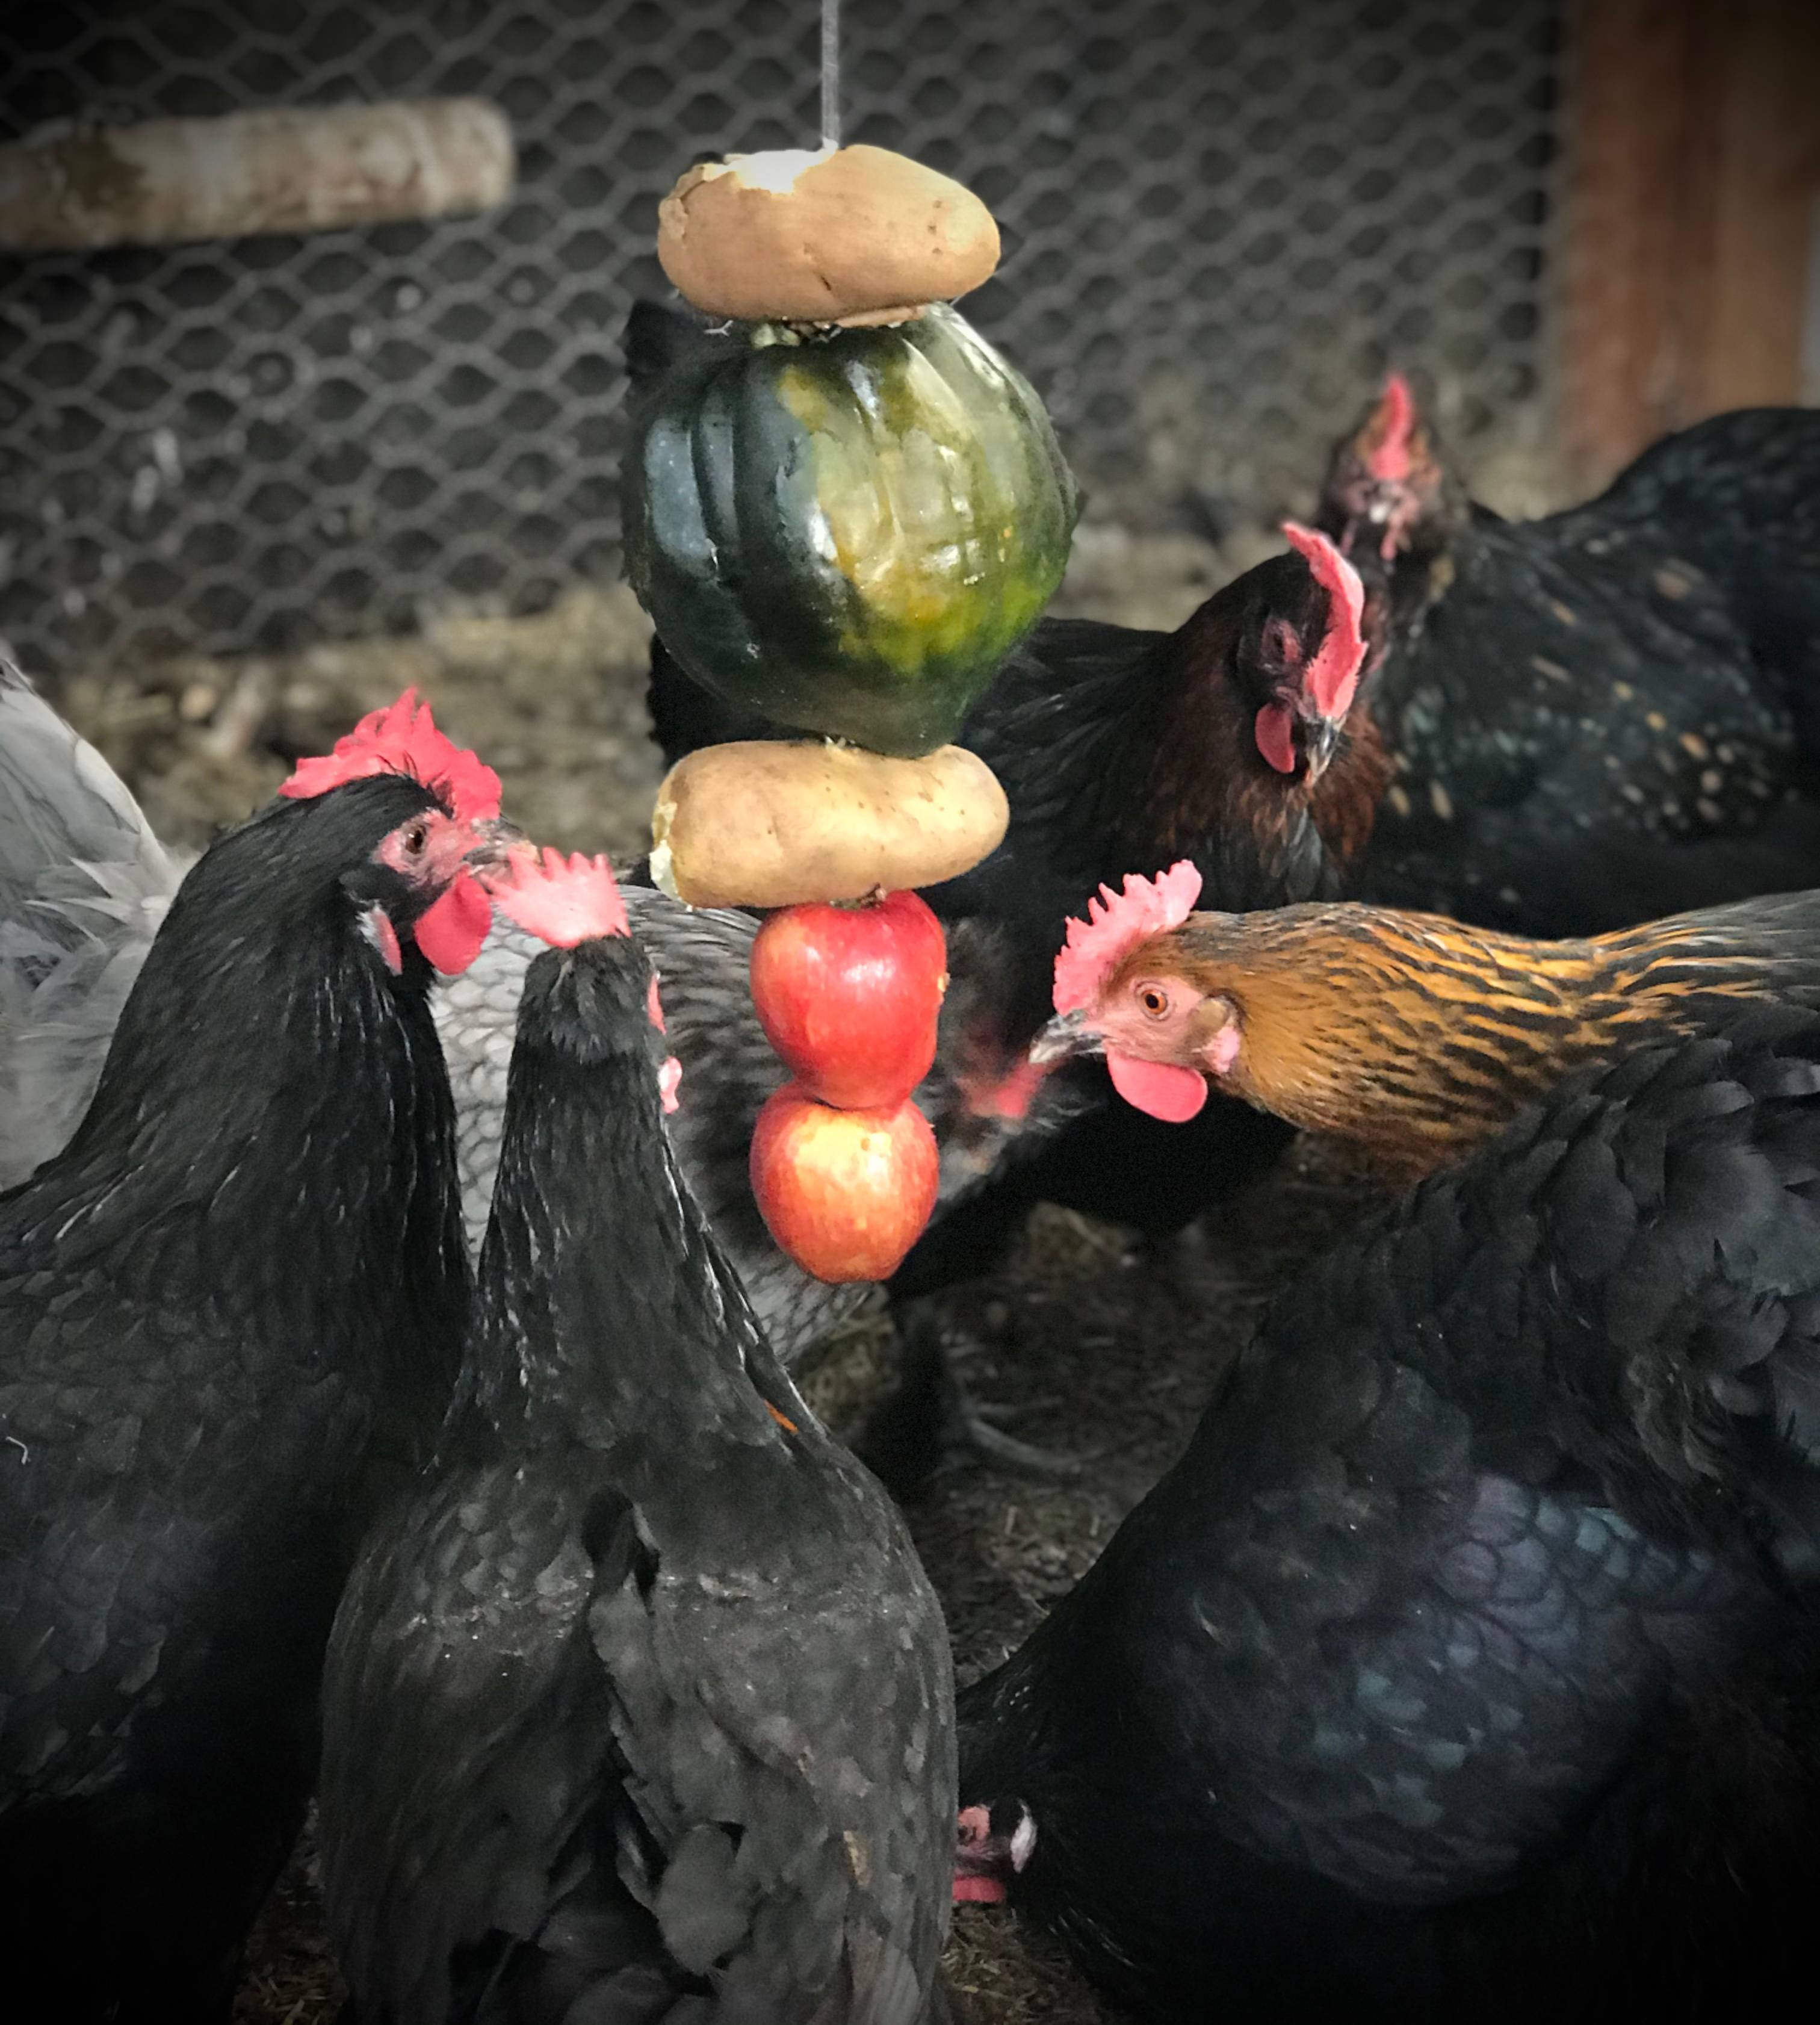 Skewer of Fruits and Vegetables for Chicken Entertainment